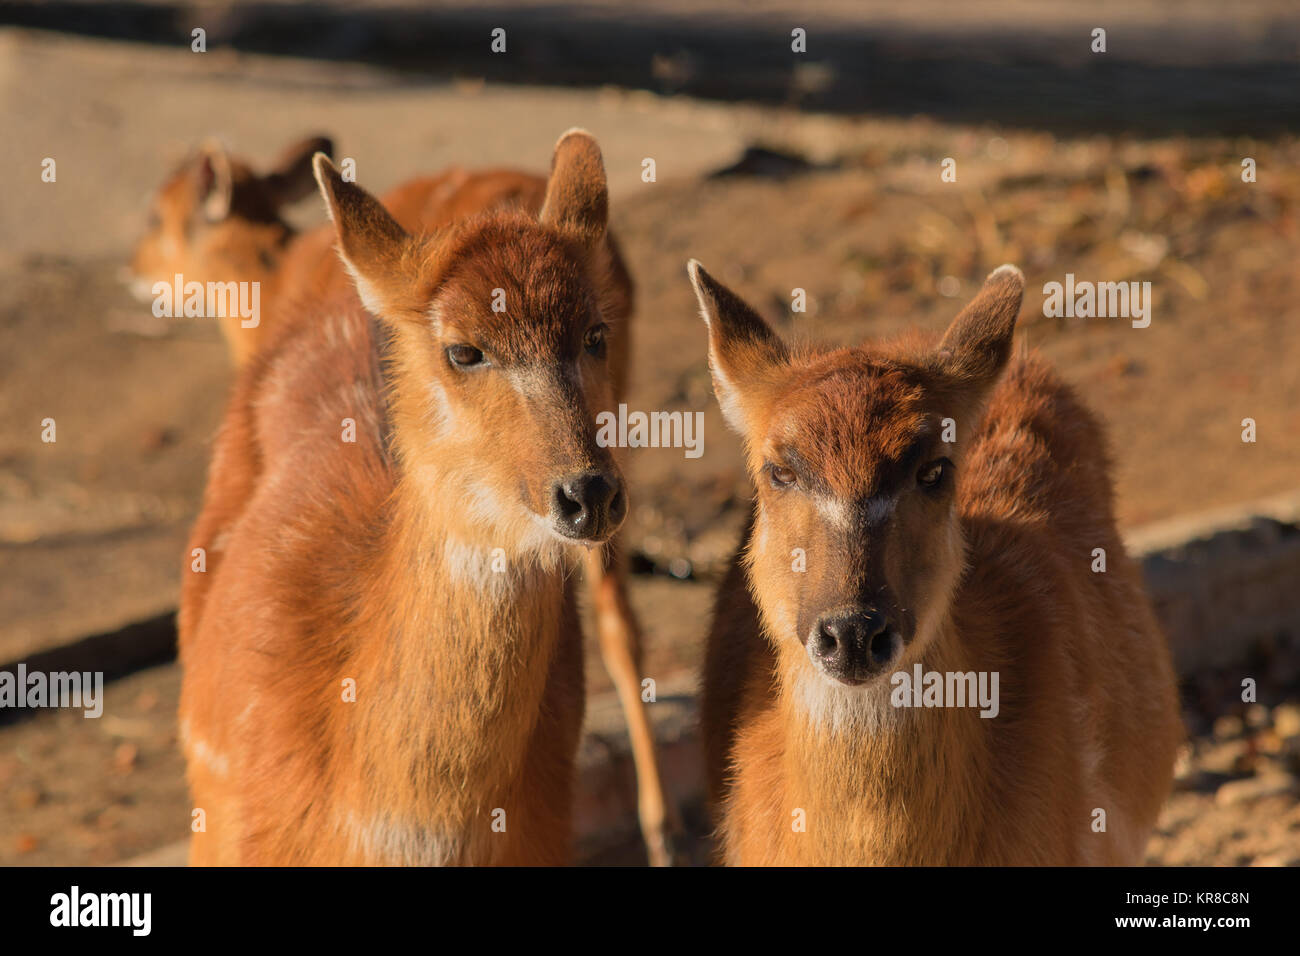 Pair of brown antelopes in the sand looking at camera - Stock Image